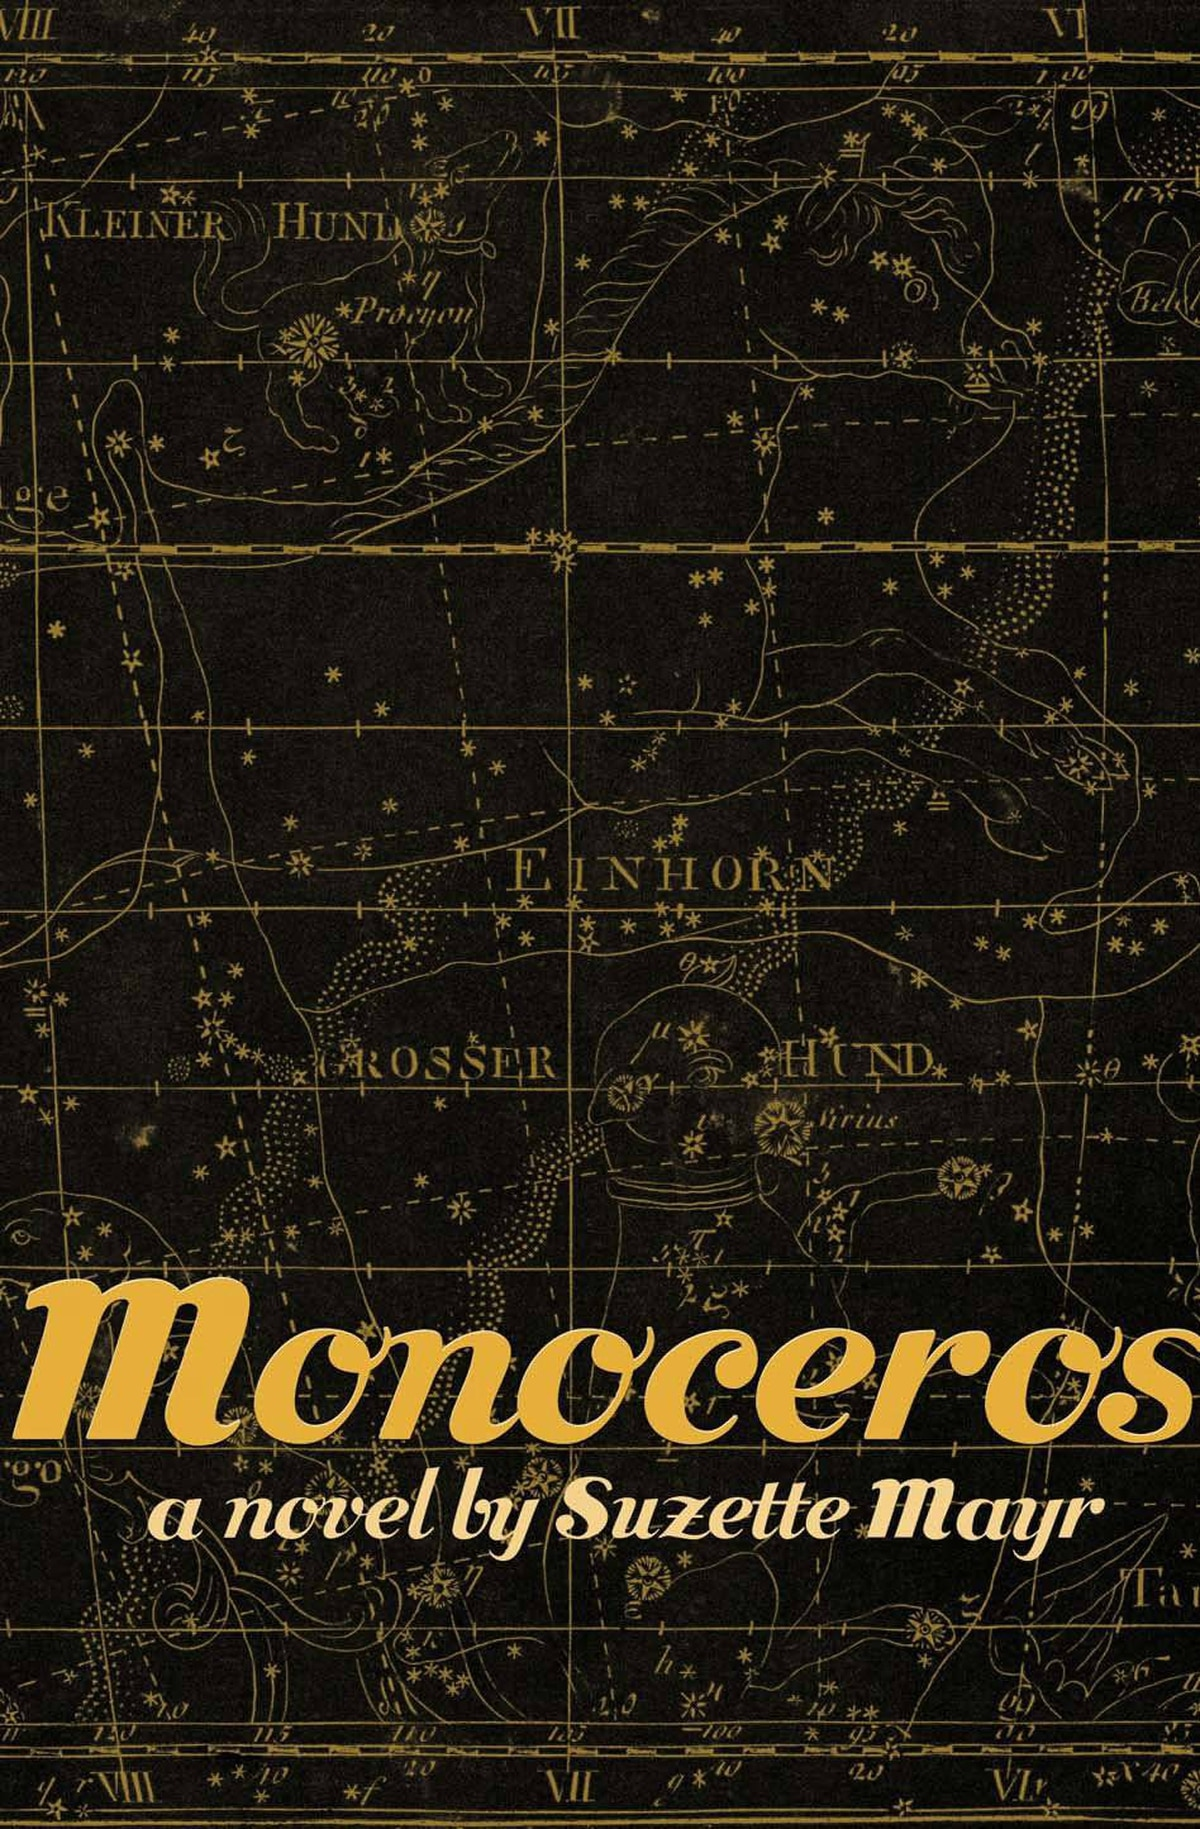 MONOCEROS By Suzette Mayr (Coach House) In this imaginative, quirky and devastating novel, the first chapter is narrated by the Dead Boy, harassed for being gay. By the end of the chapter, he has hanged himself; the rest of the novel is written by the students, parents and staff affected. Mayr nails the voices of her stable of wildly divergent narrators with aplomb. – Zoe Whittall